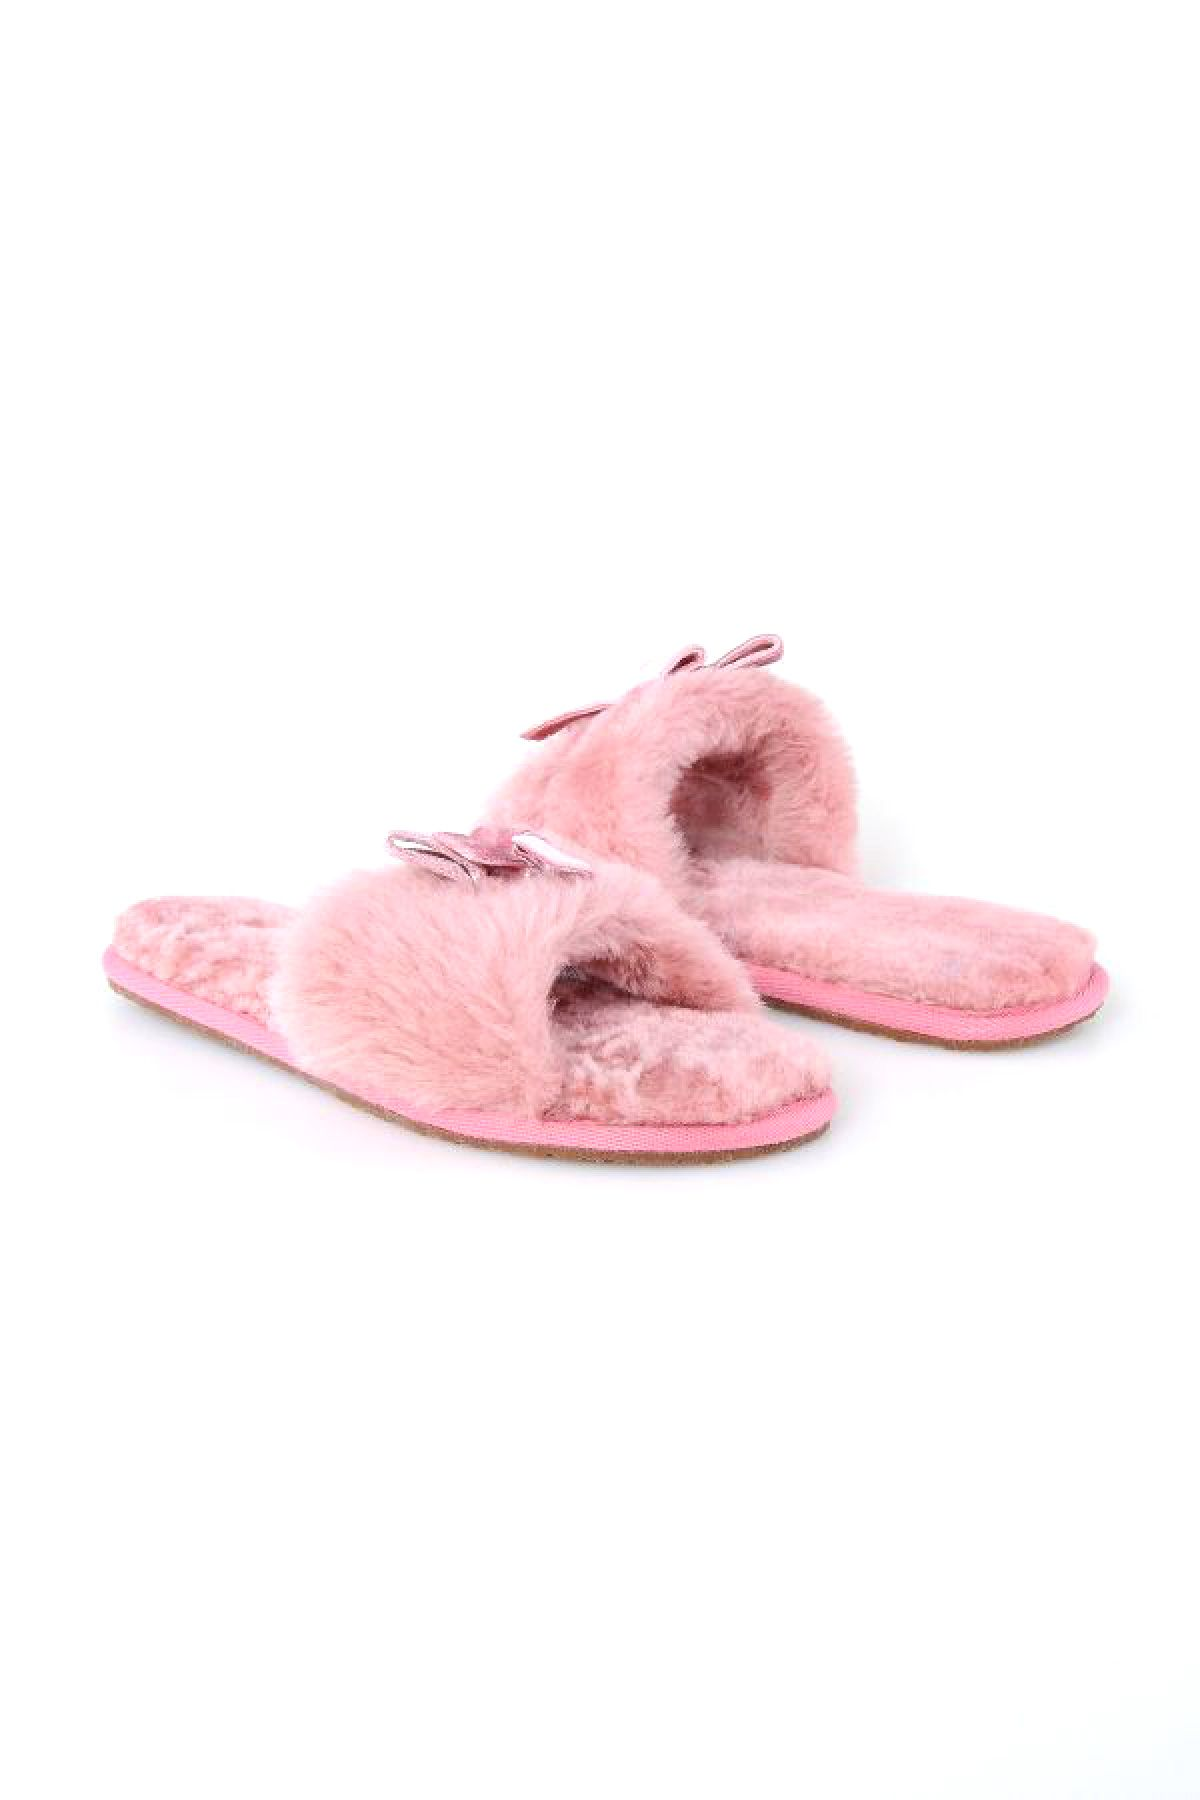 Pegia Women Shearling Slippers With Bow 191093 Powdery